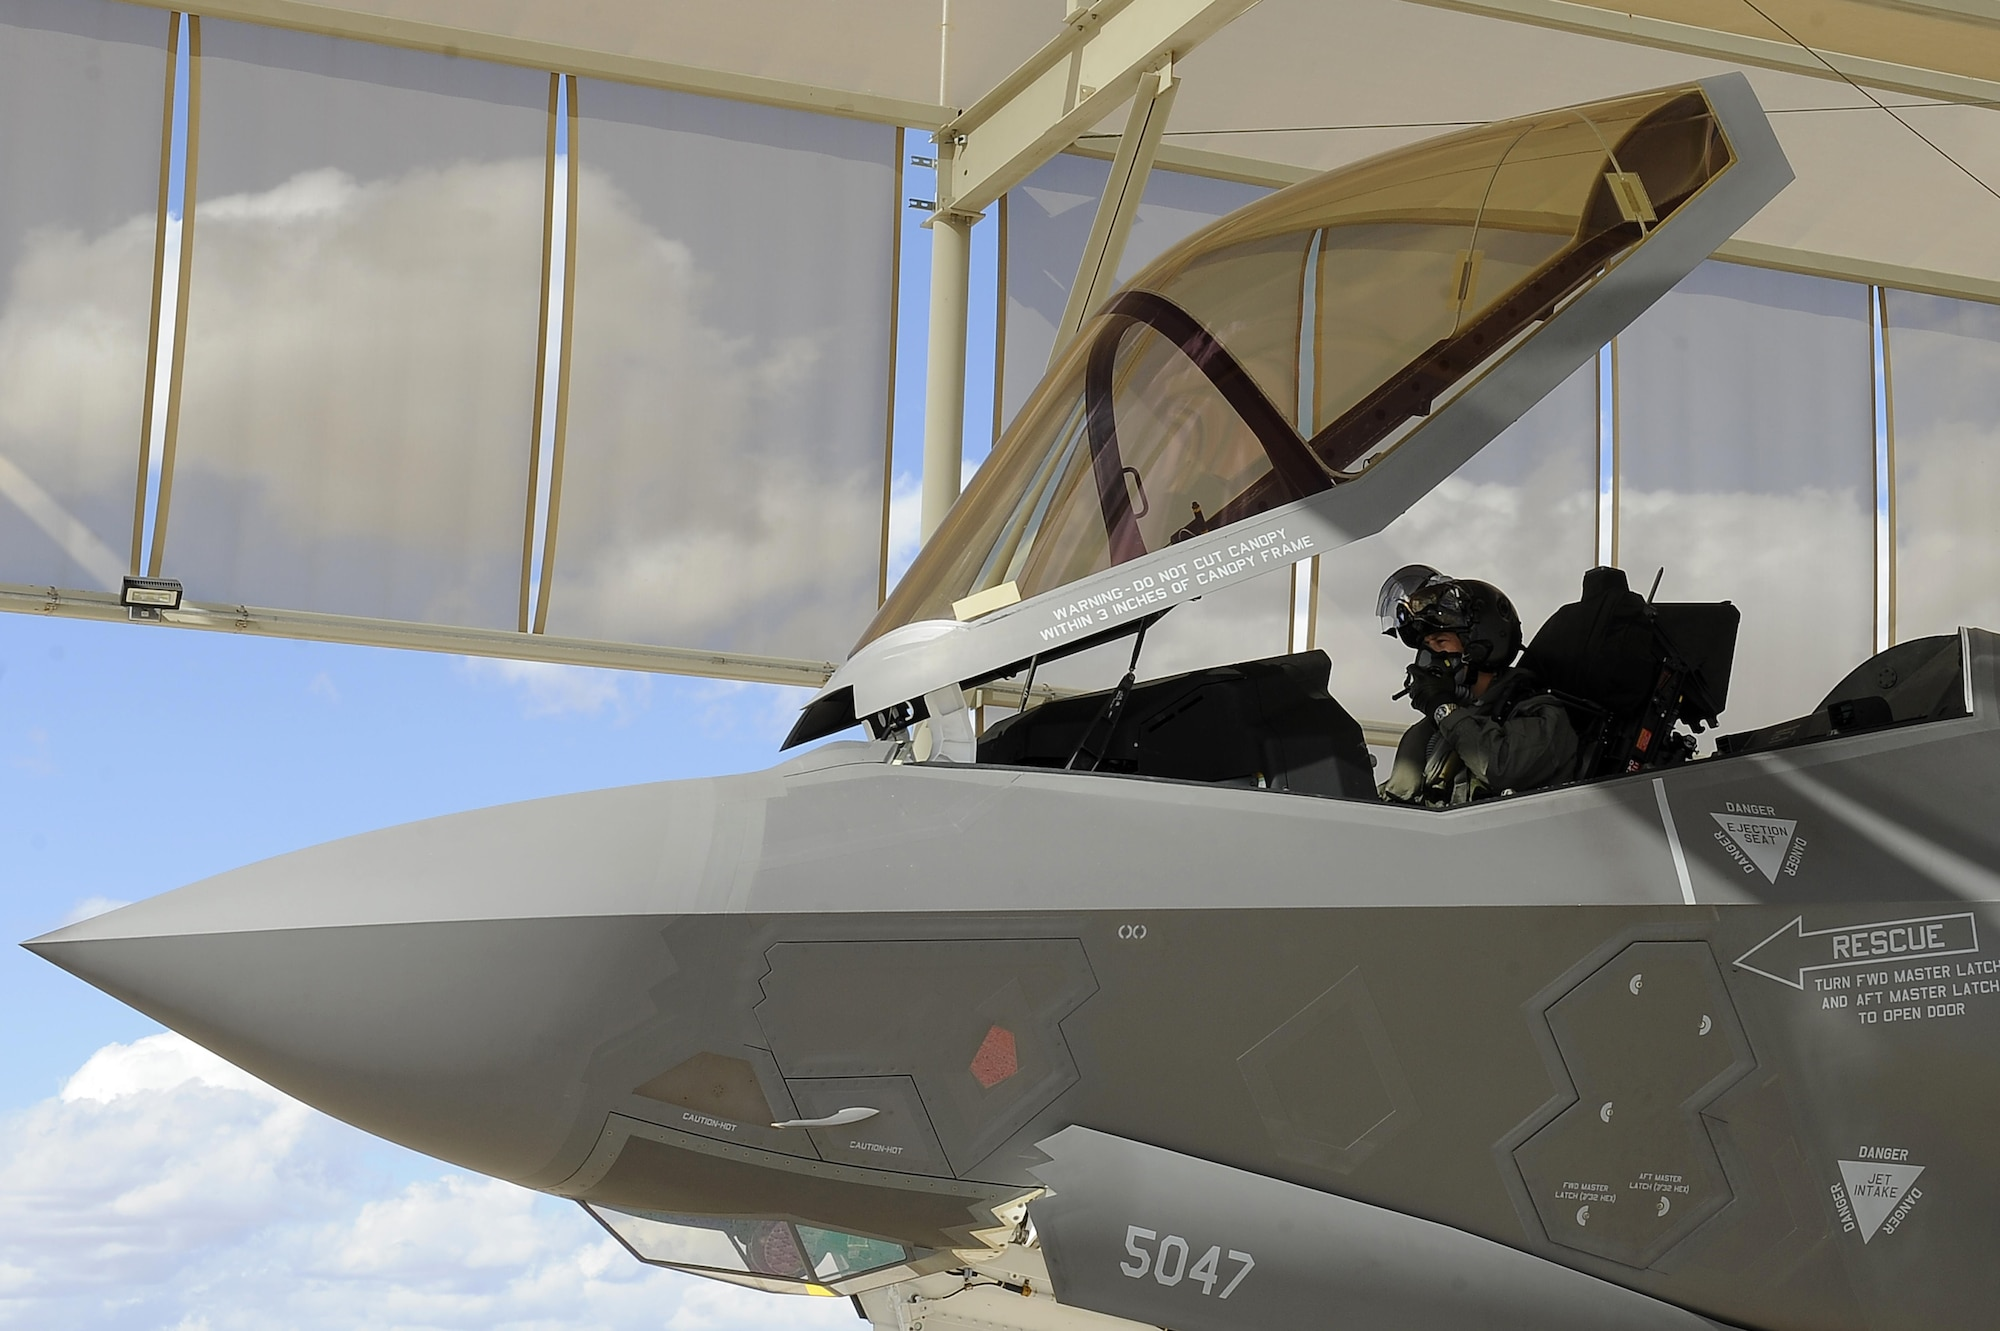 Royal Norwegian Air Force Maj. Morten Hanche, a 62nd Fighter Squadron training pilot, prepares for his first F-35 Lightning ll flight Nov. 10, 2015, at Luke Air Force Base. His flight coincided with the arrival of the first Norwegian F-35 and the Royal Norwegian Air Force's birthday. (U.S. Air Force photo/Airman Pedro Mota)